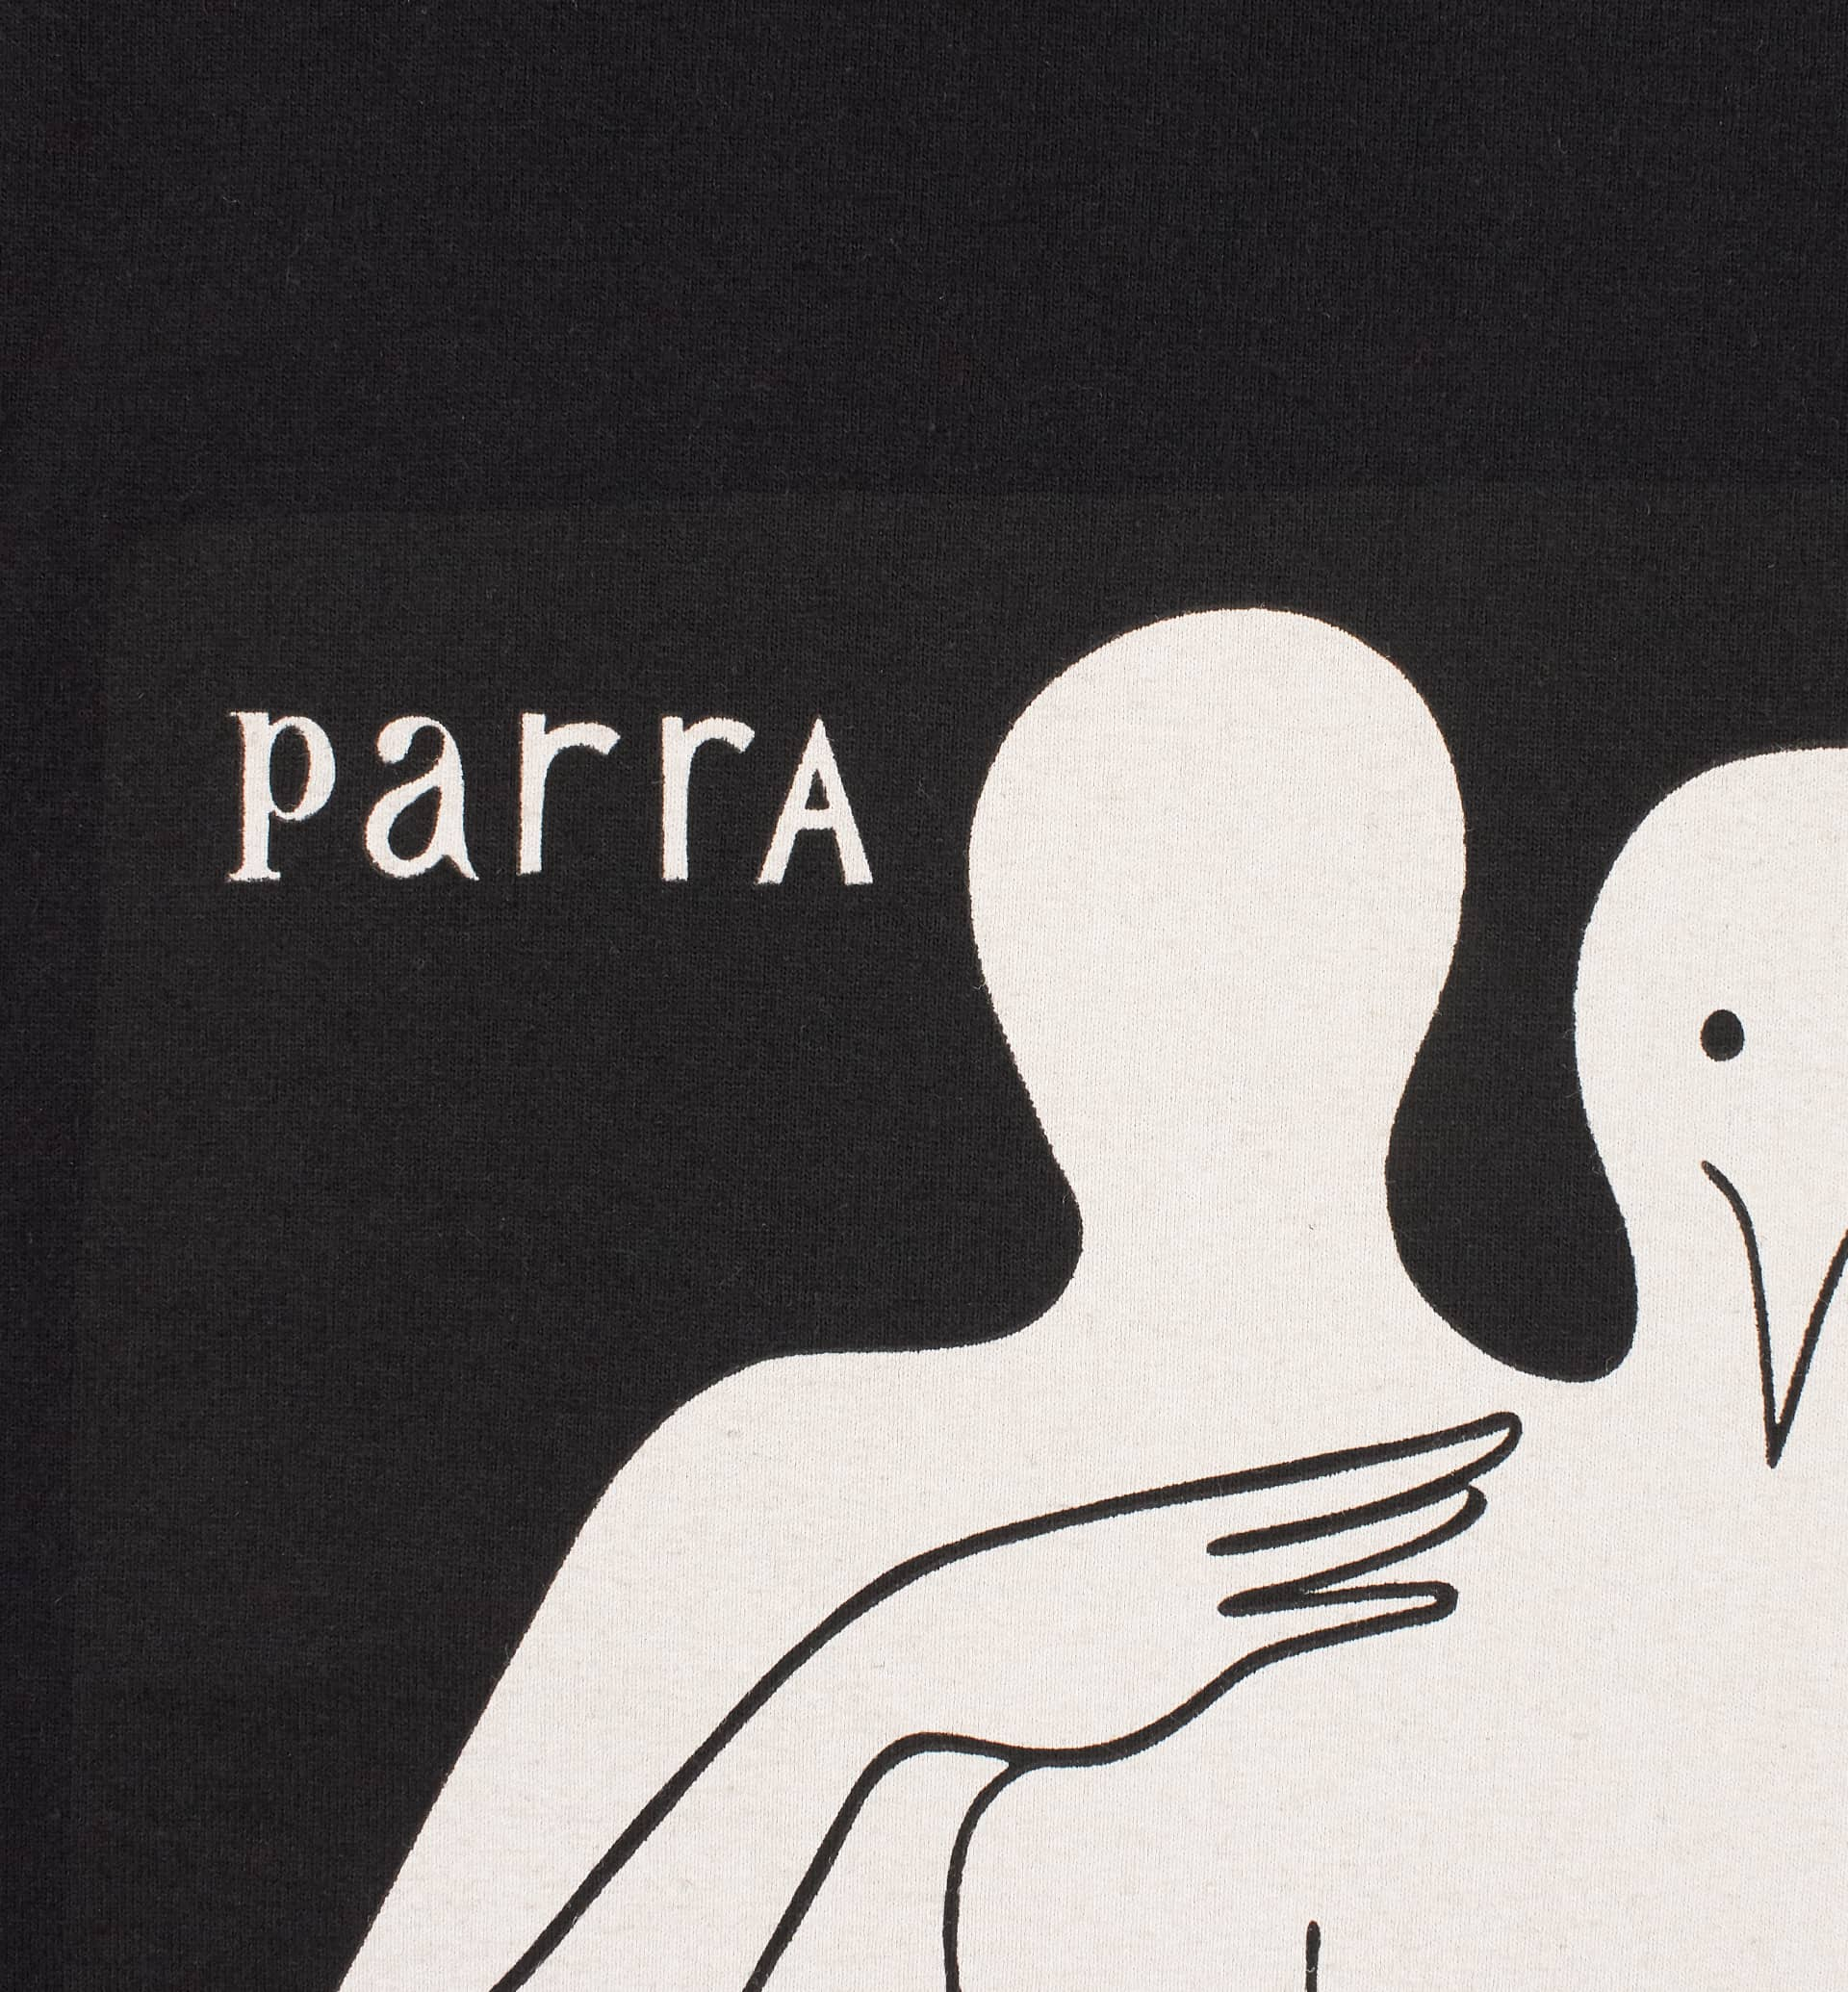 Parra - plastic people long sleeve t-shirt